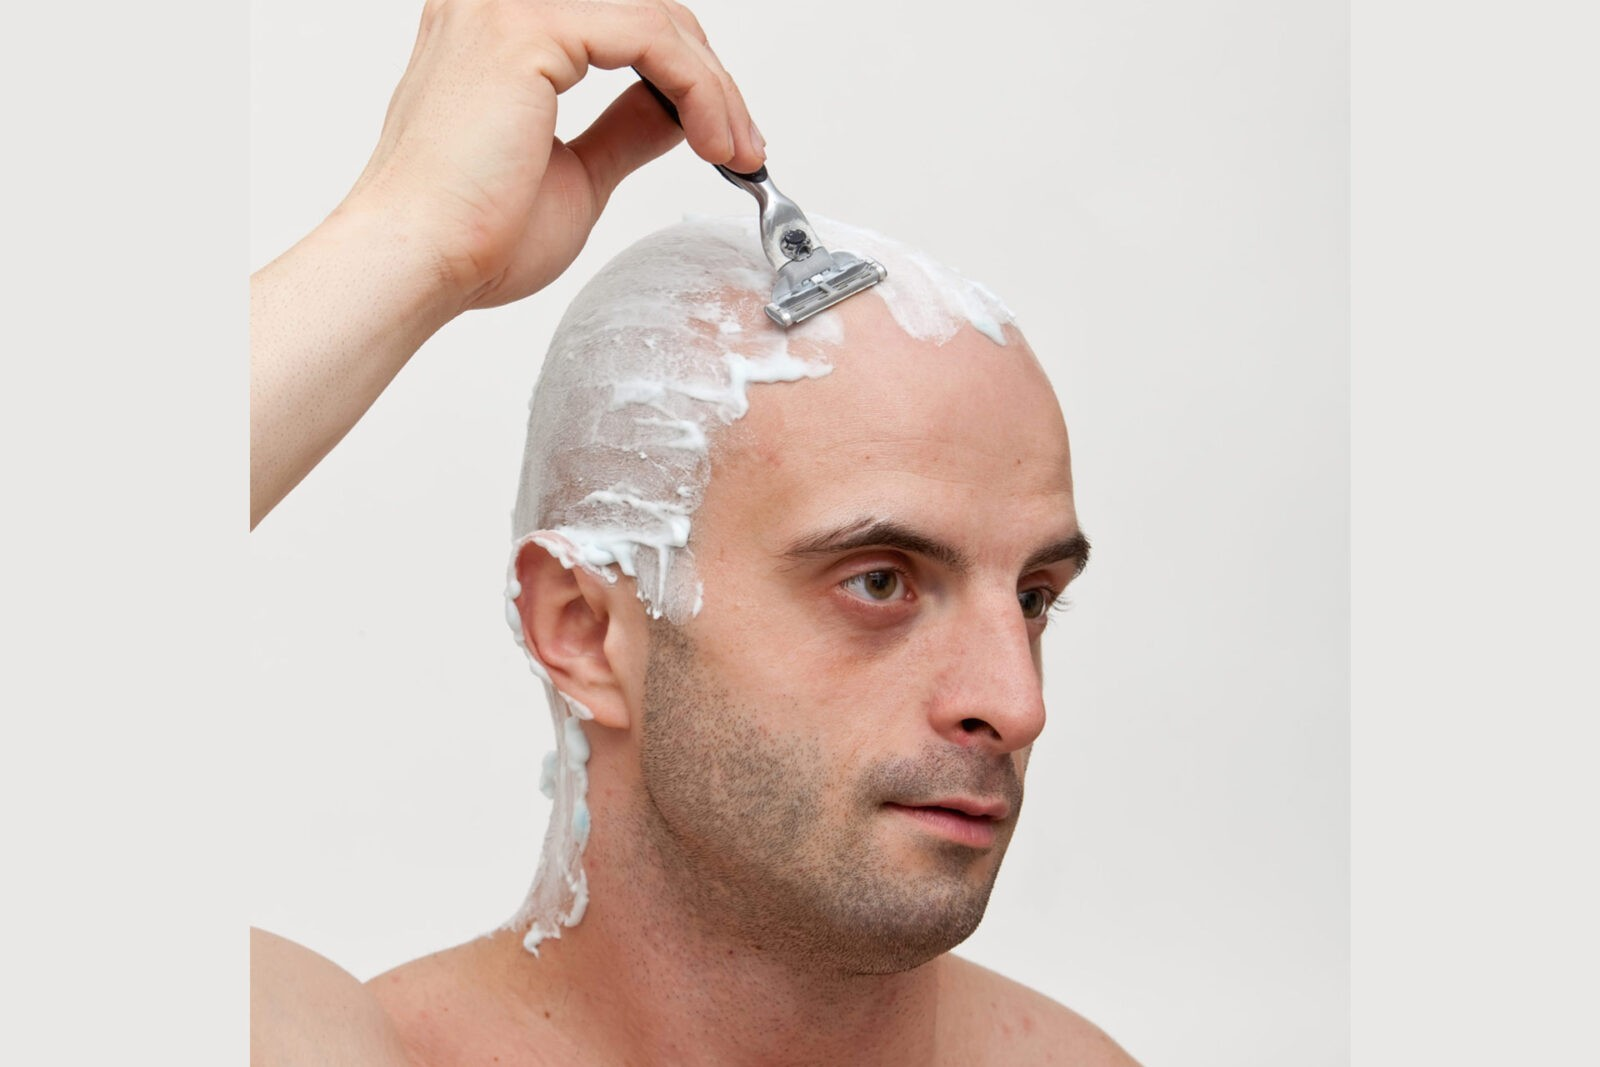 Do I Need To Shave My Head To Have Scalp Micro Pigmentation (SMP)?